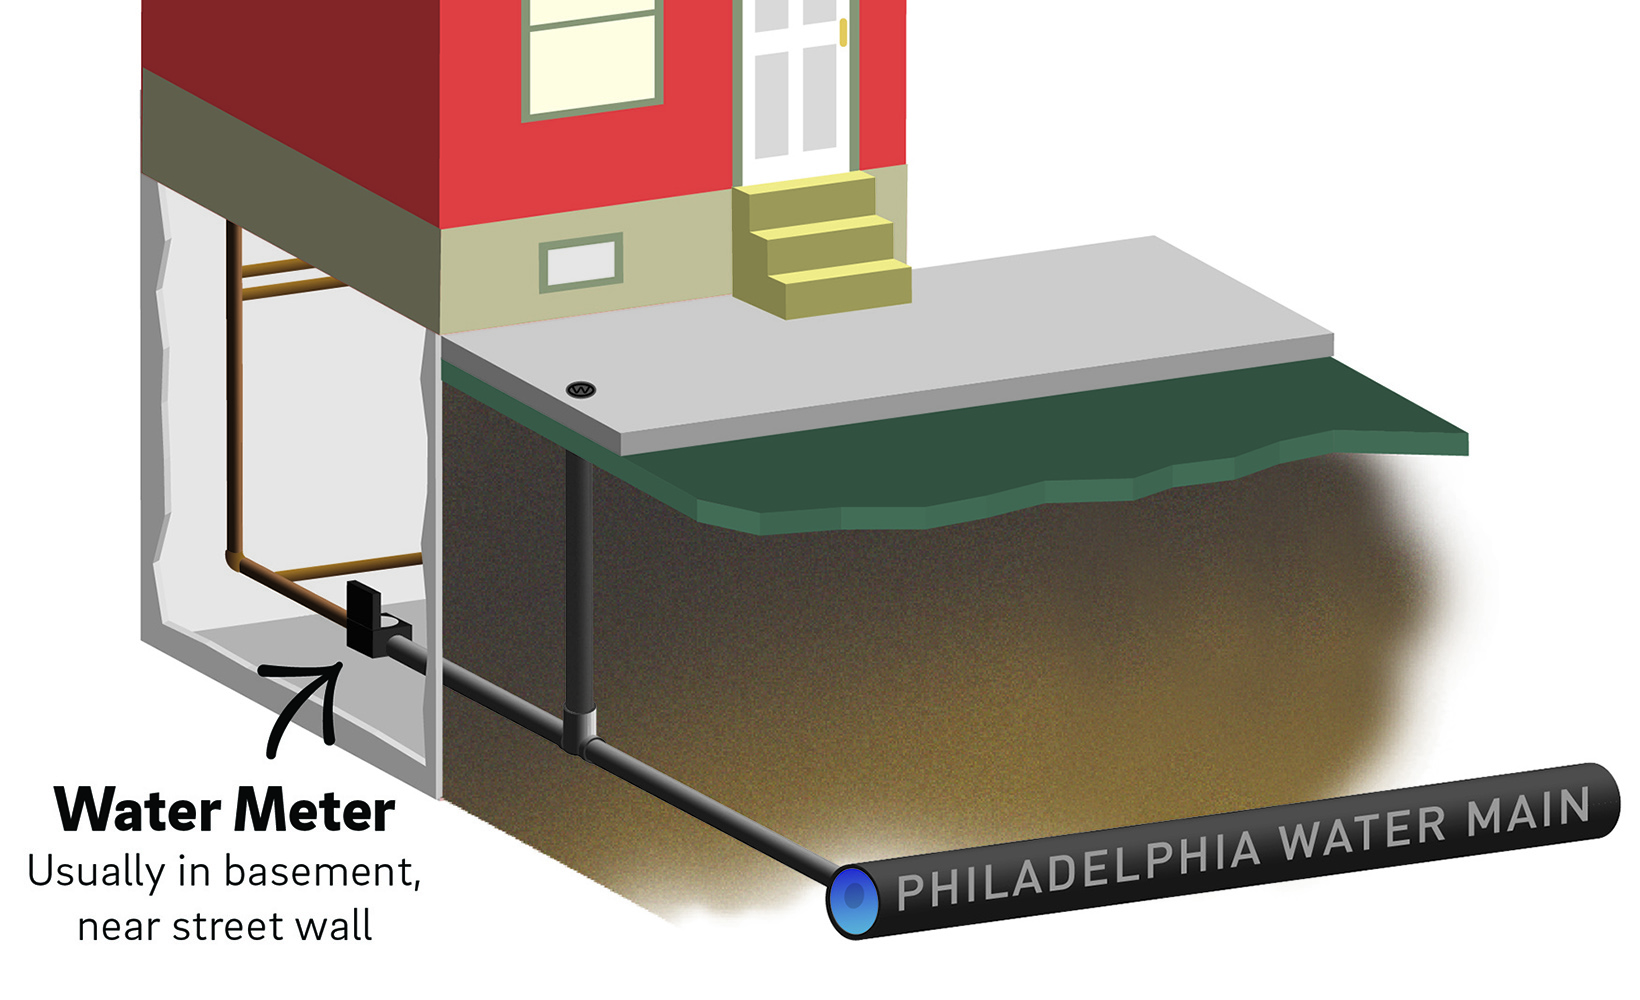 3d cut-away style simple illustration of the typical plumbing leading from a water main into a Philadelphia home. The water meter is usually located in the basement, near the front wall (closest to the street)